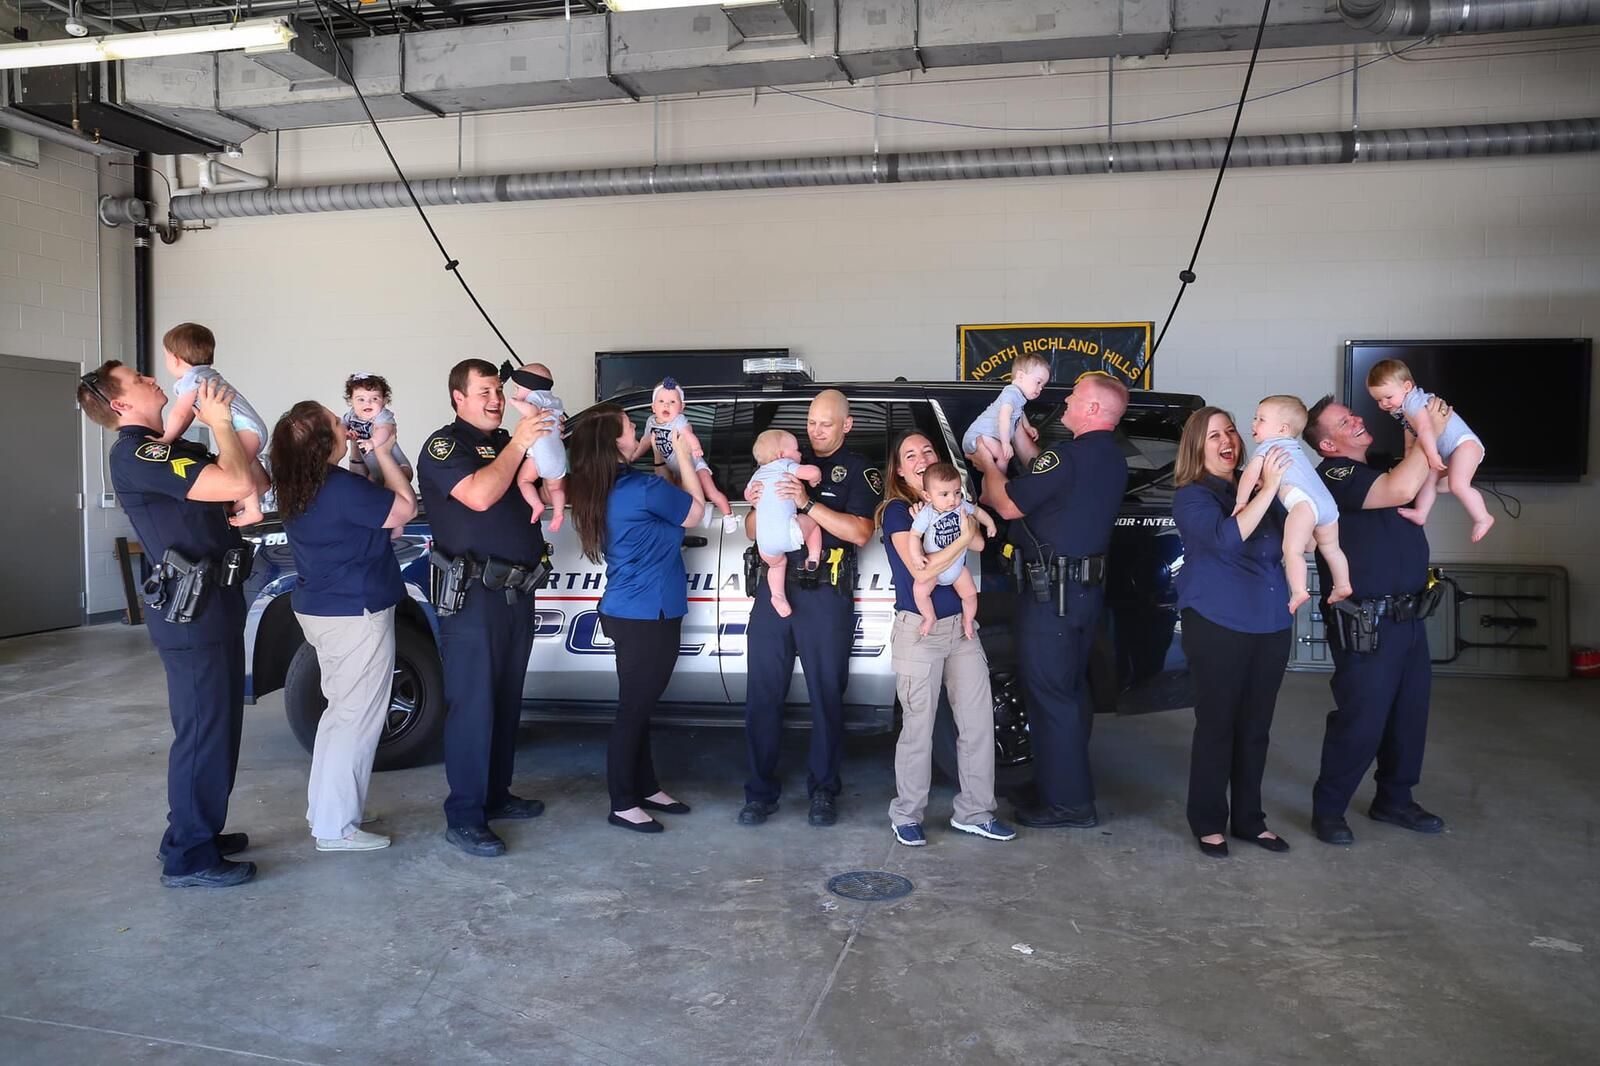 North Richland Hills Police Department - 97 Crime and Safety